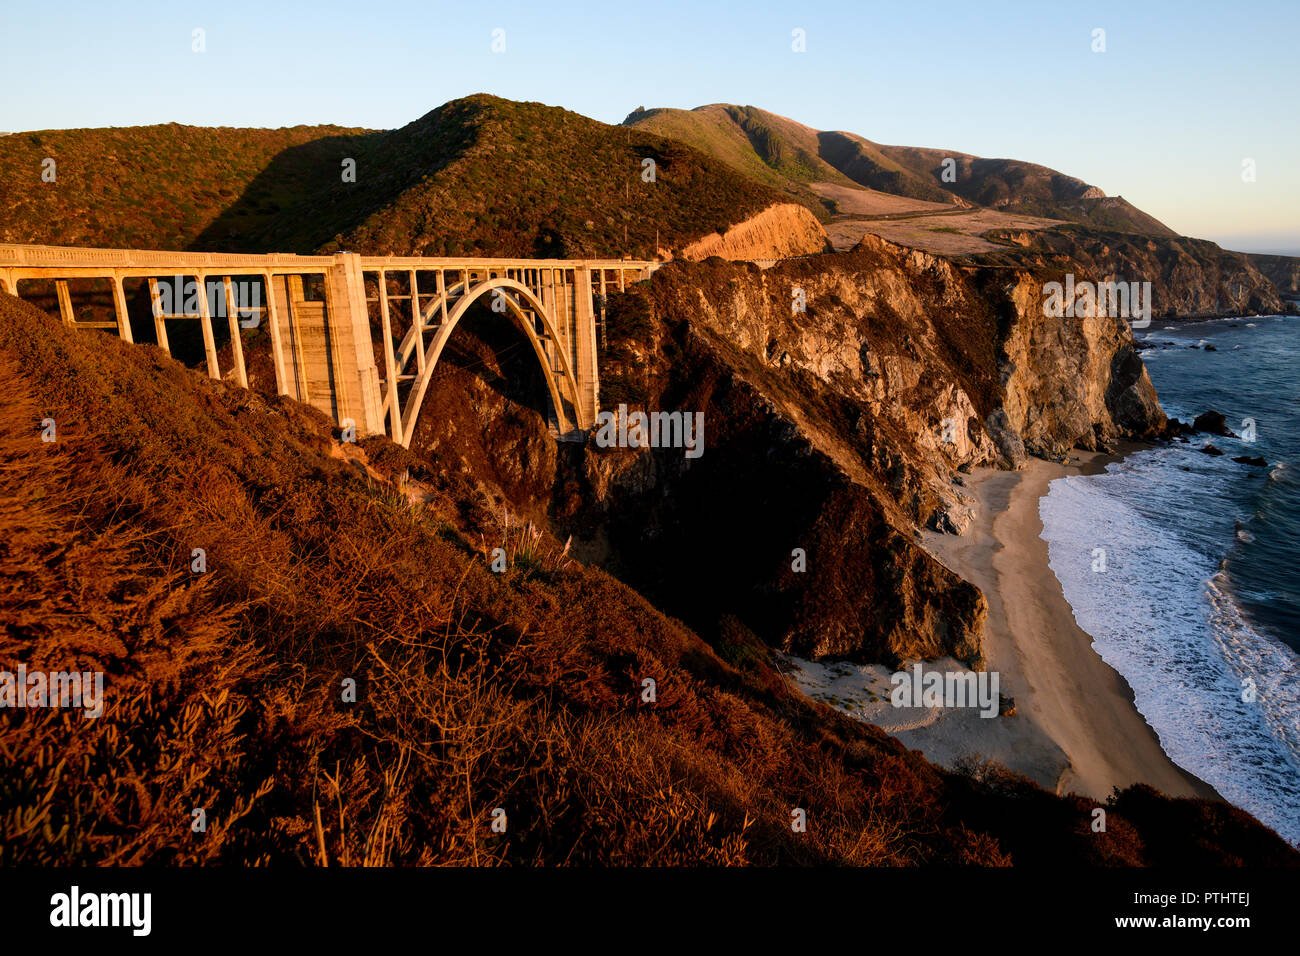 The famous Bixby bridge at sunset over the Pacific Ocean in fall along the Big Sur coastline on Highway 1, California, USA. - Stock Image